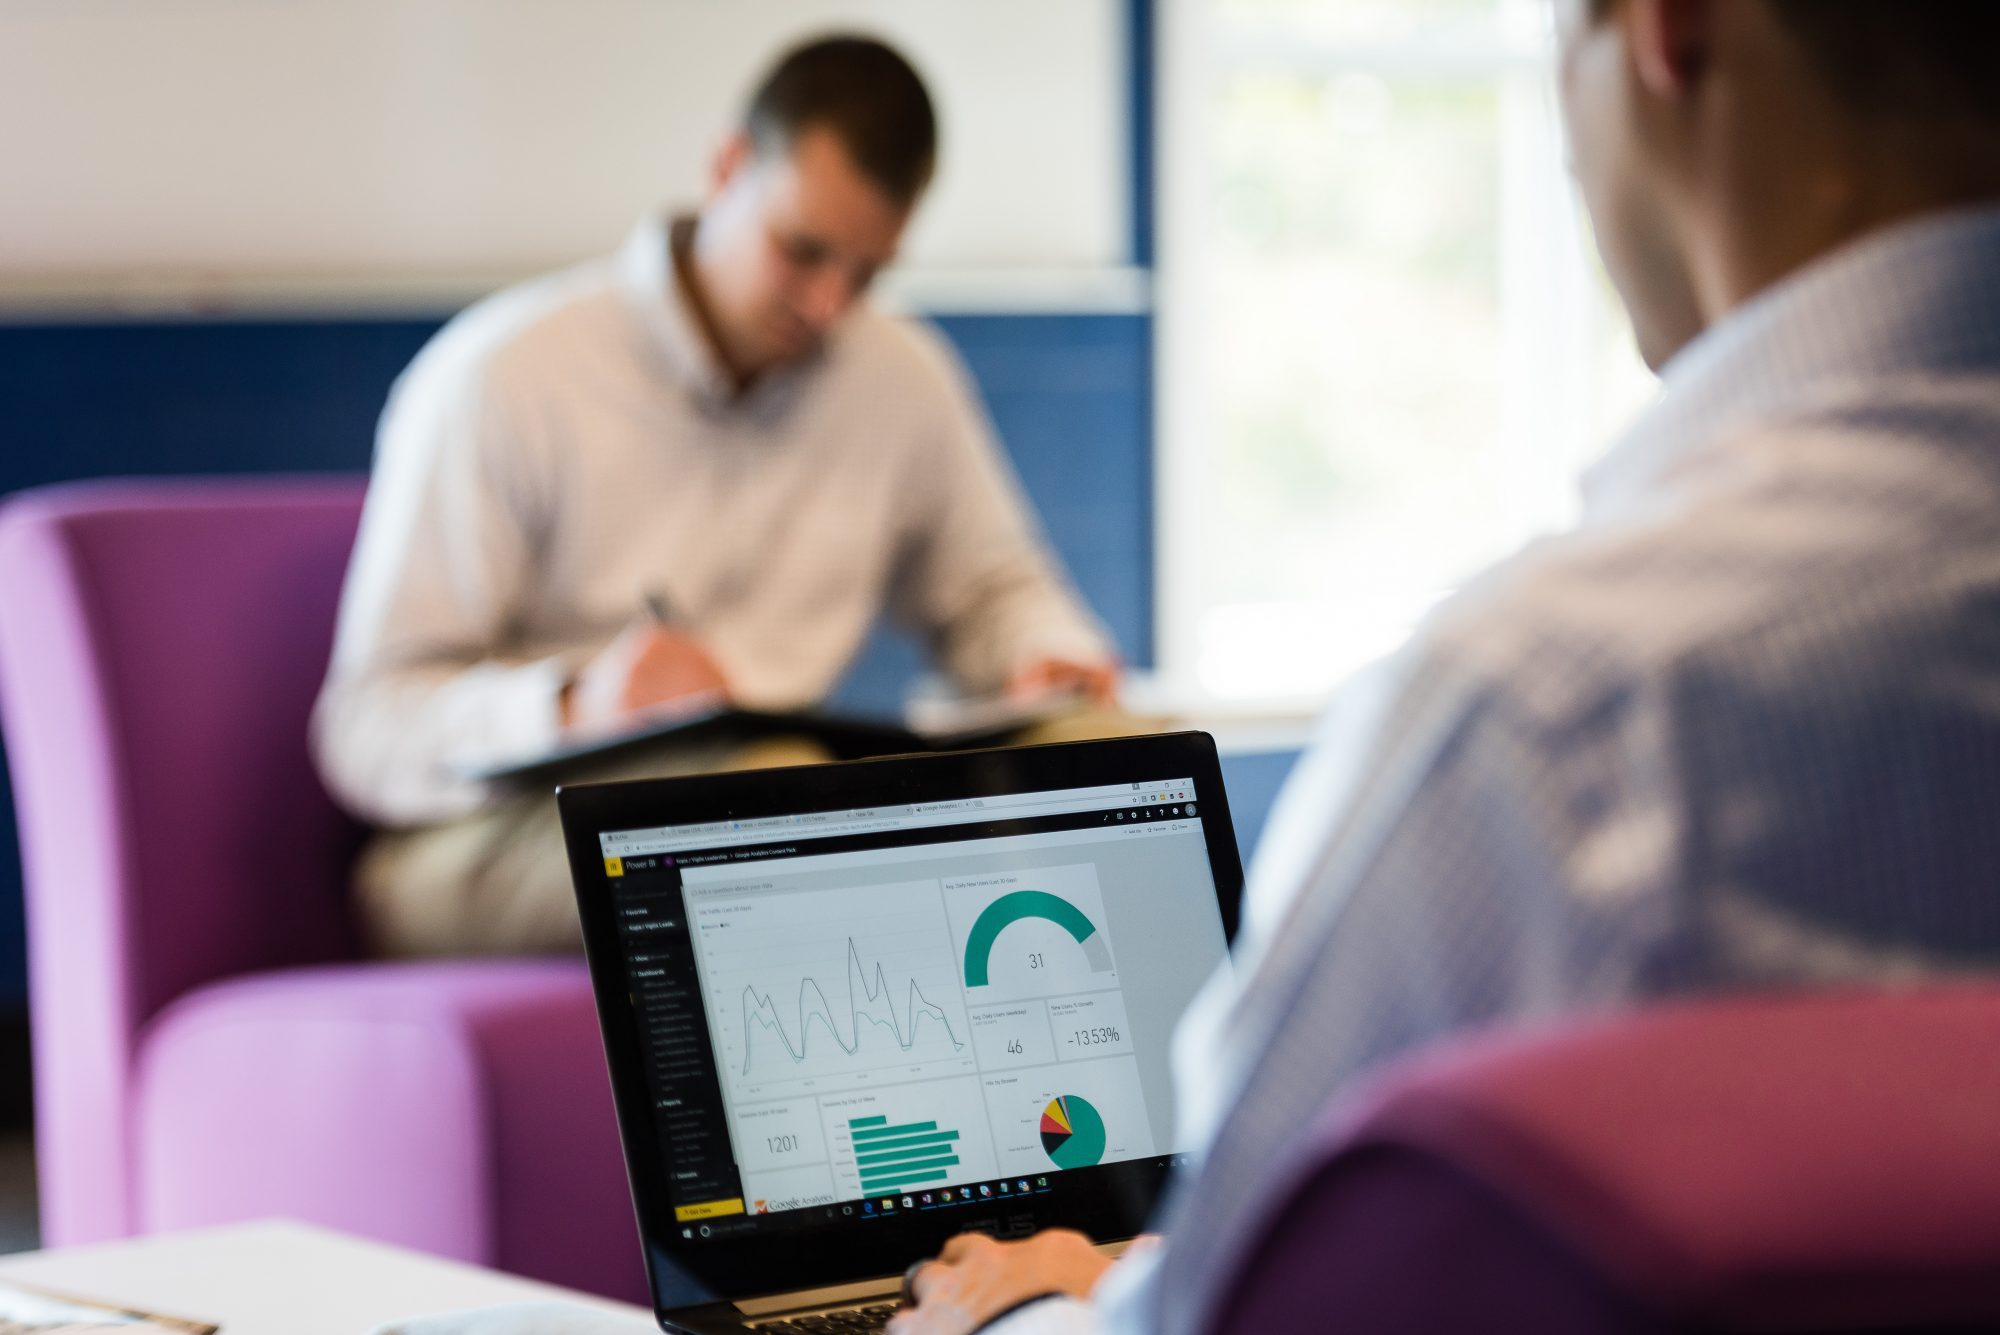 Man looking at laptop with business intelligence dashboard displayed